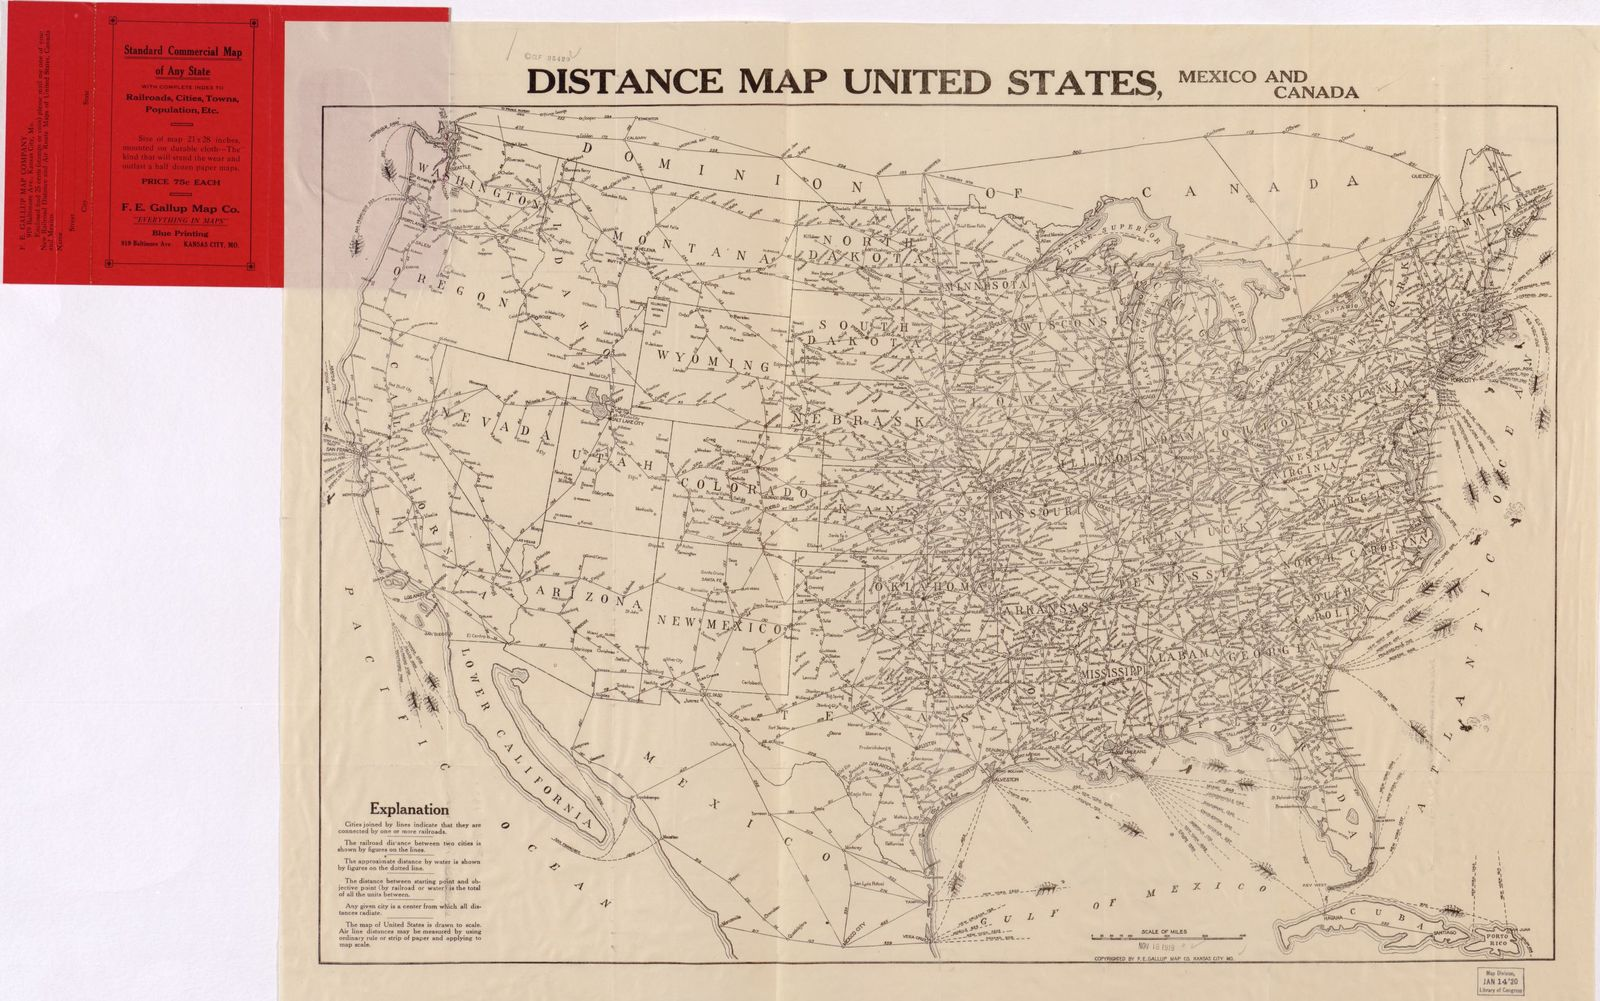 Distance Map United States Mexico And Canada Picryl